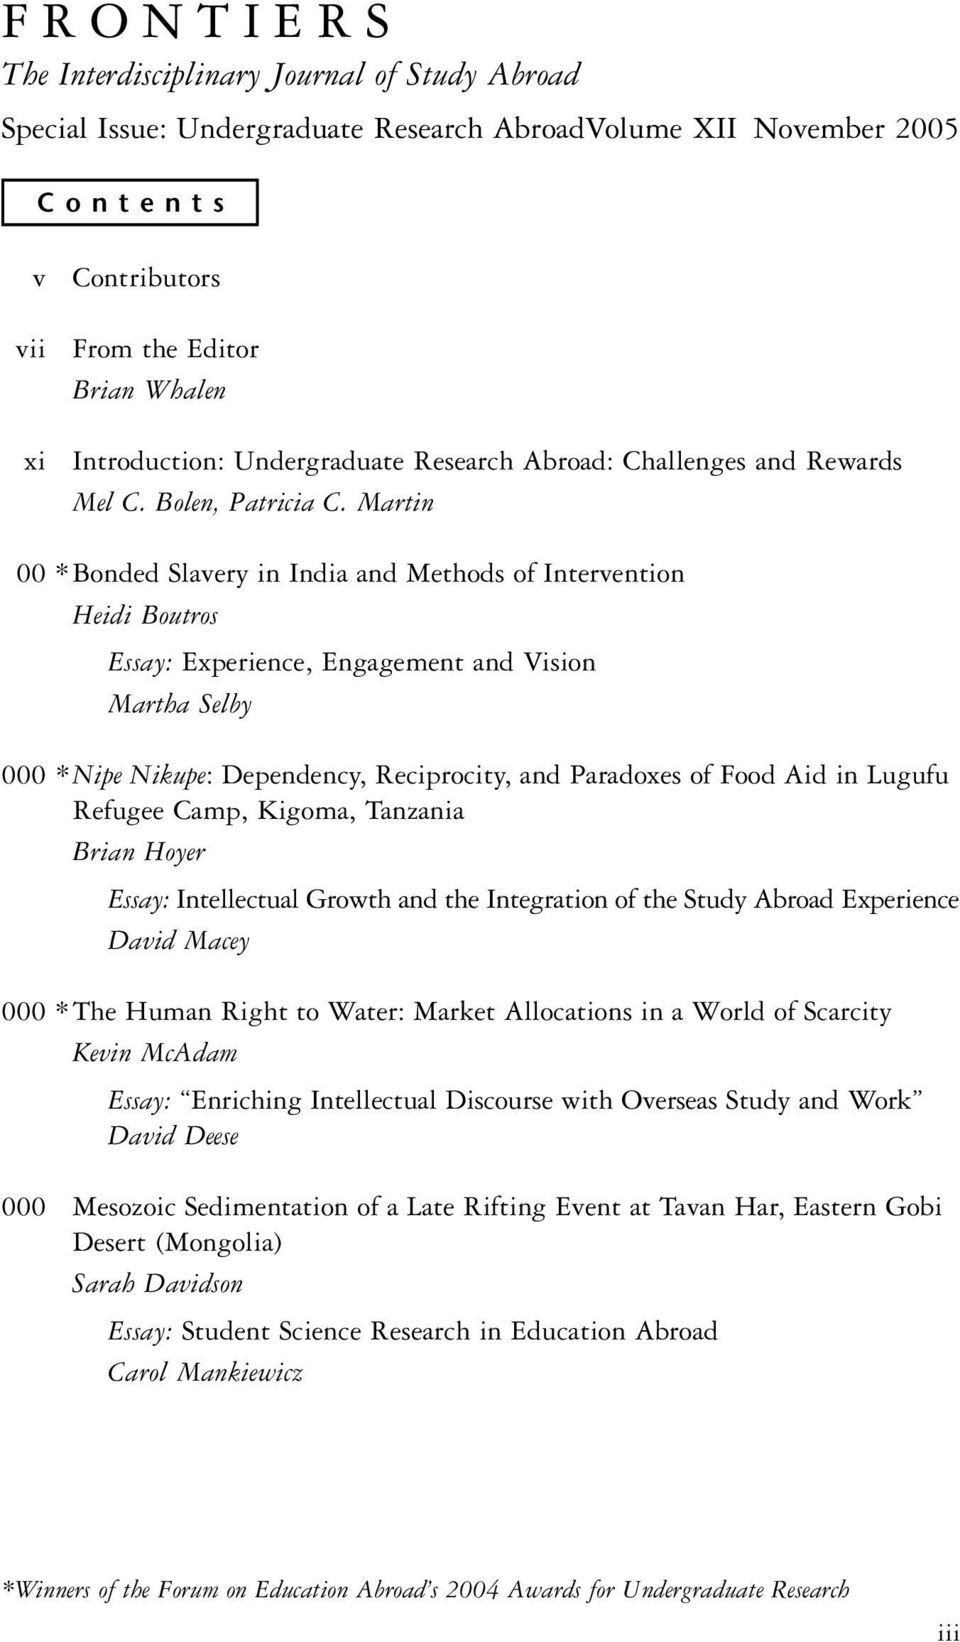 Martin 00 *Bonded Slavery in India and Methods of Intervention Heidi Boutros Essay: Experience, Engagement and Vision Martha Selby 000 *Nipe Nikupe: Dependency, Reciprocity, and Paradoxes of Food Aid